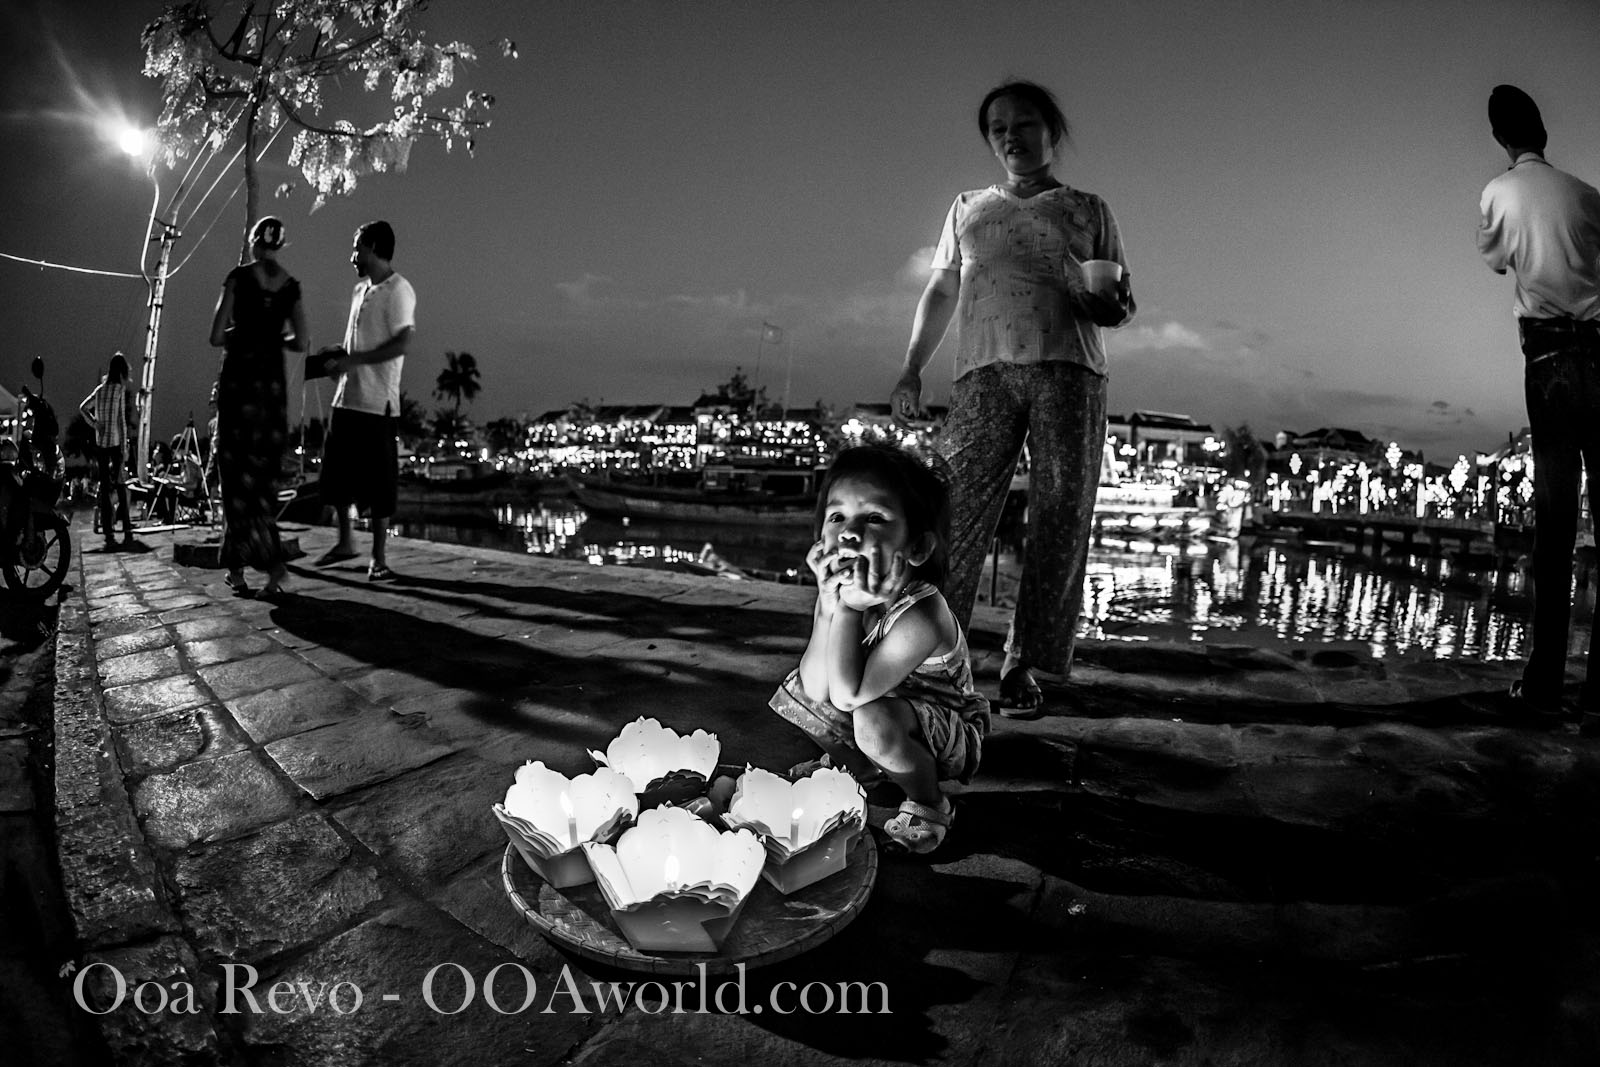 Hoi An Full Moon Festival Photo Ooaworld